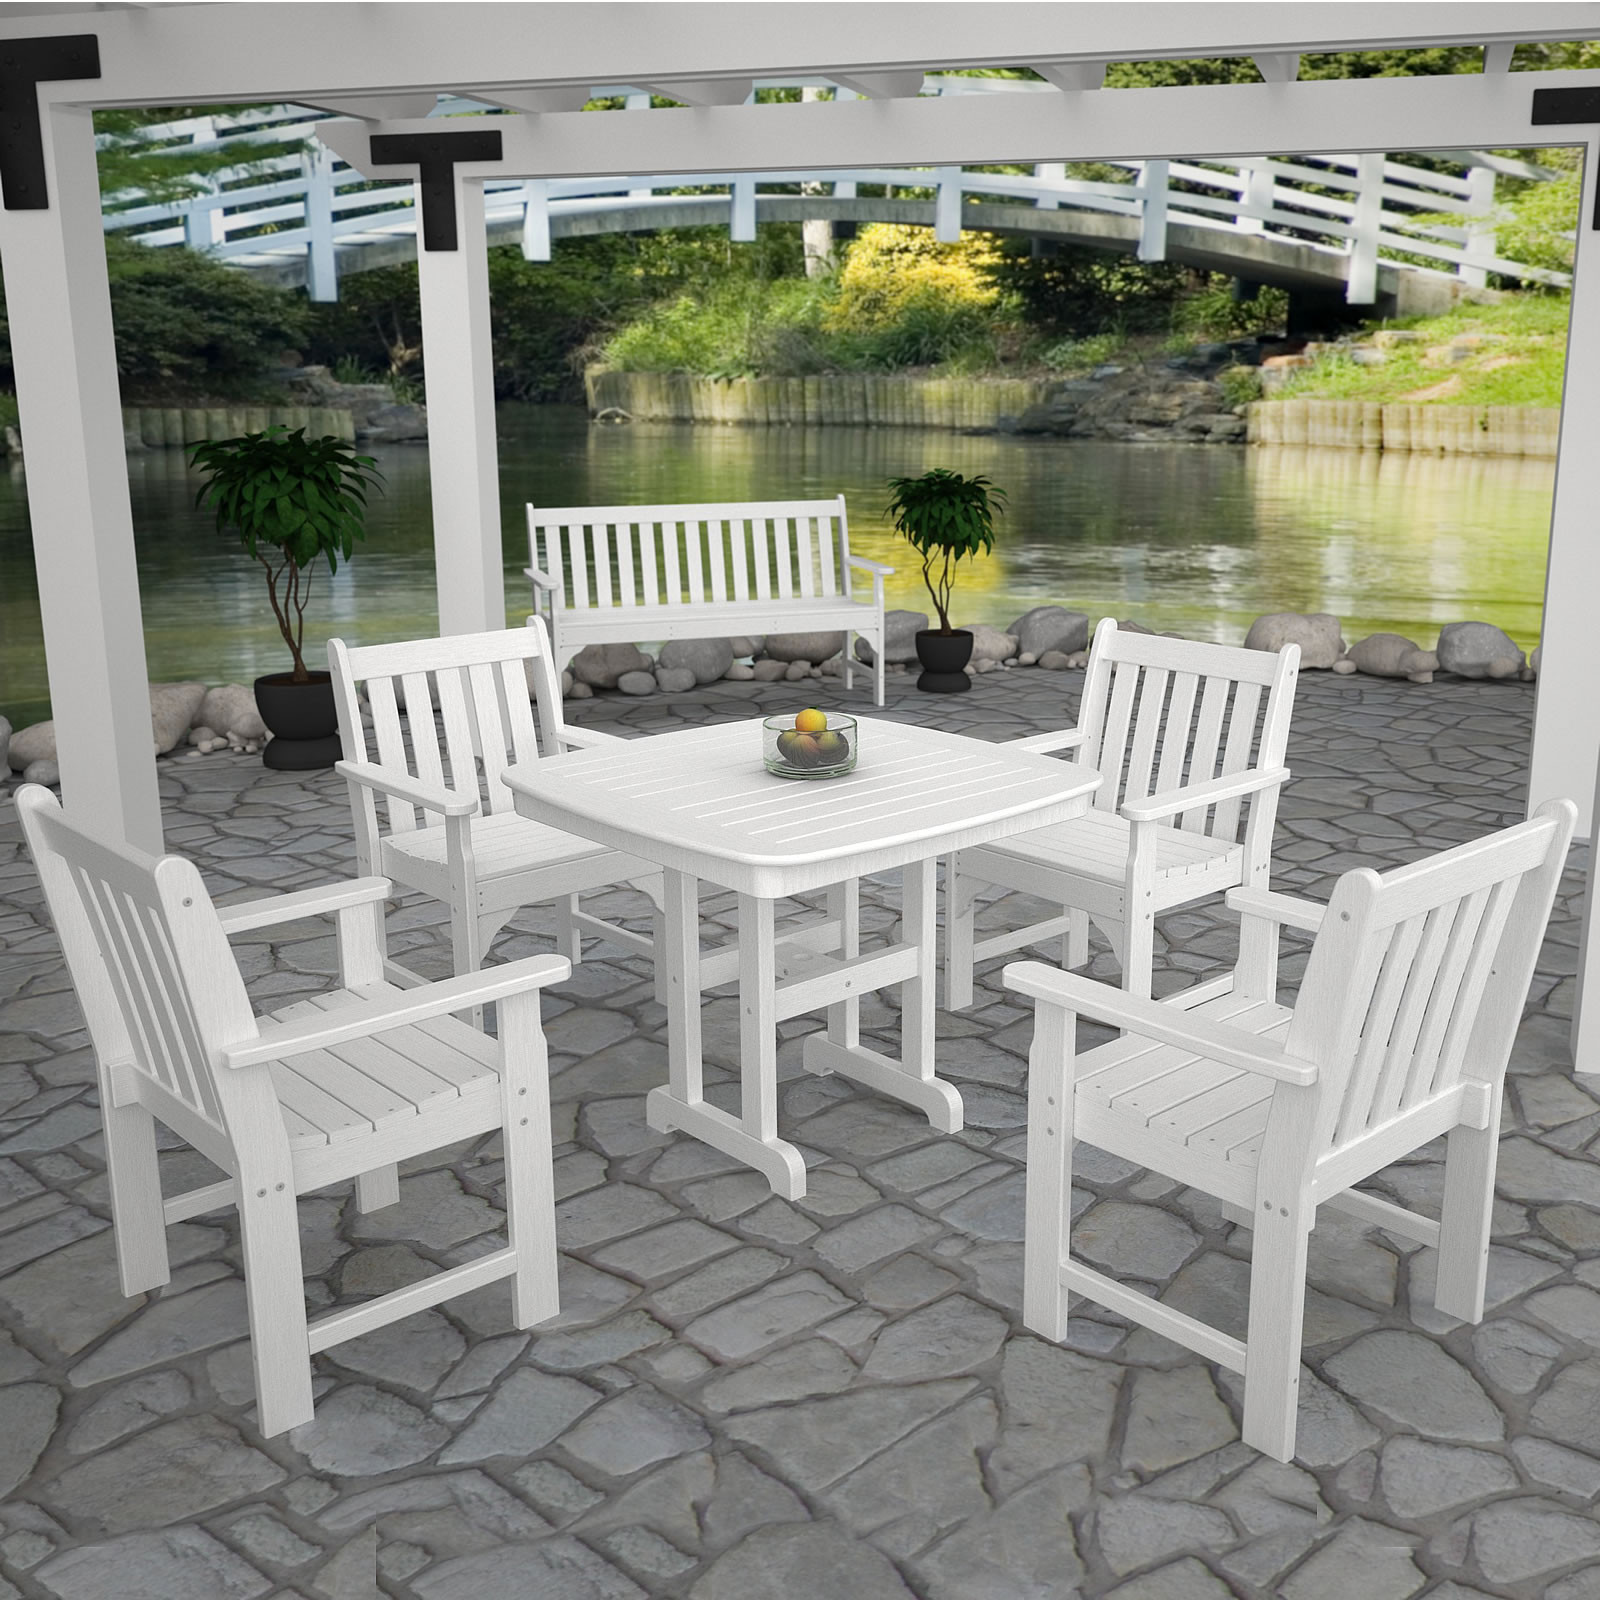 Giardino Collection Outdoor Dining: POLYWOOD® Vineyard Garden Dining Set